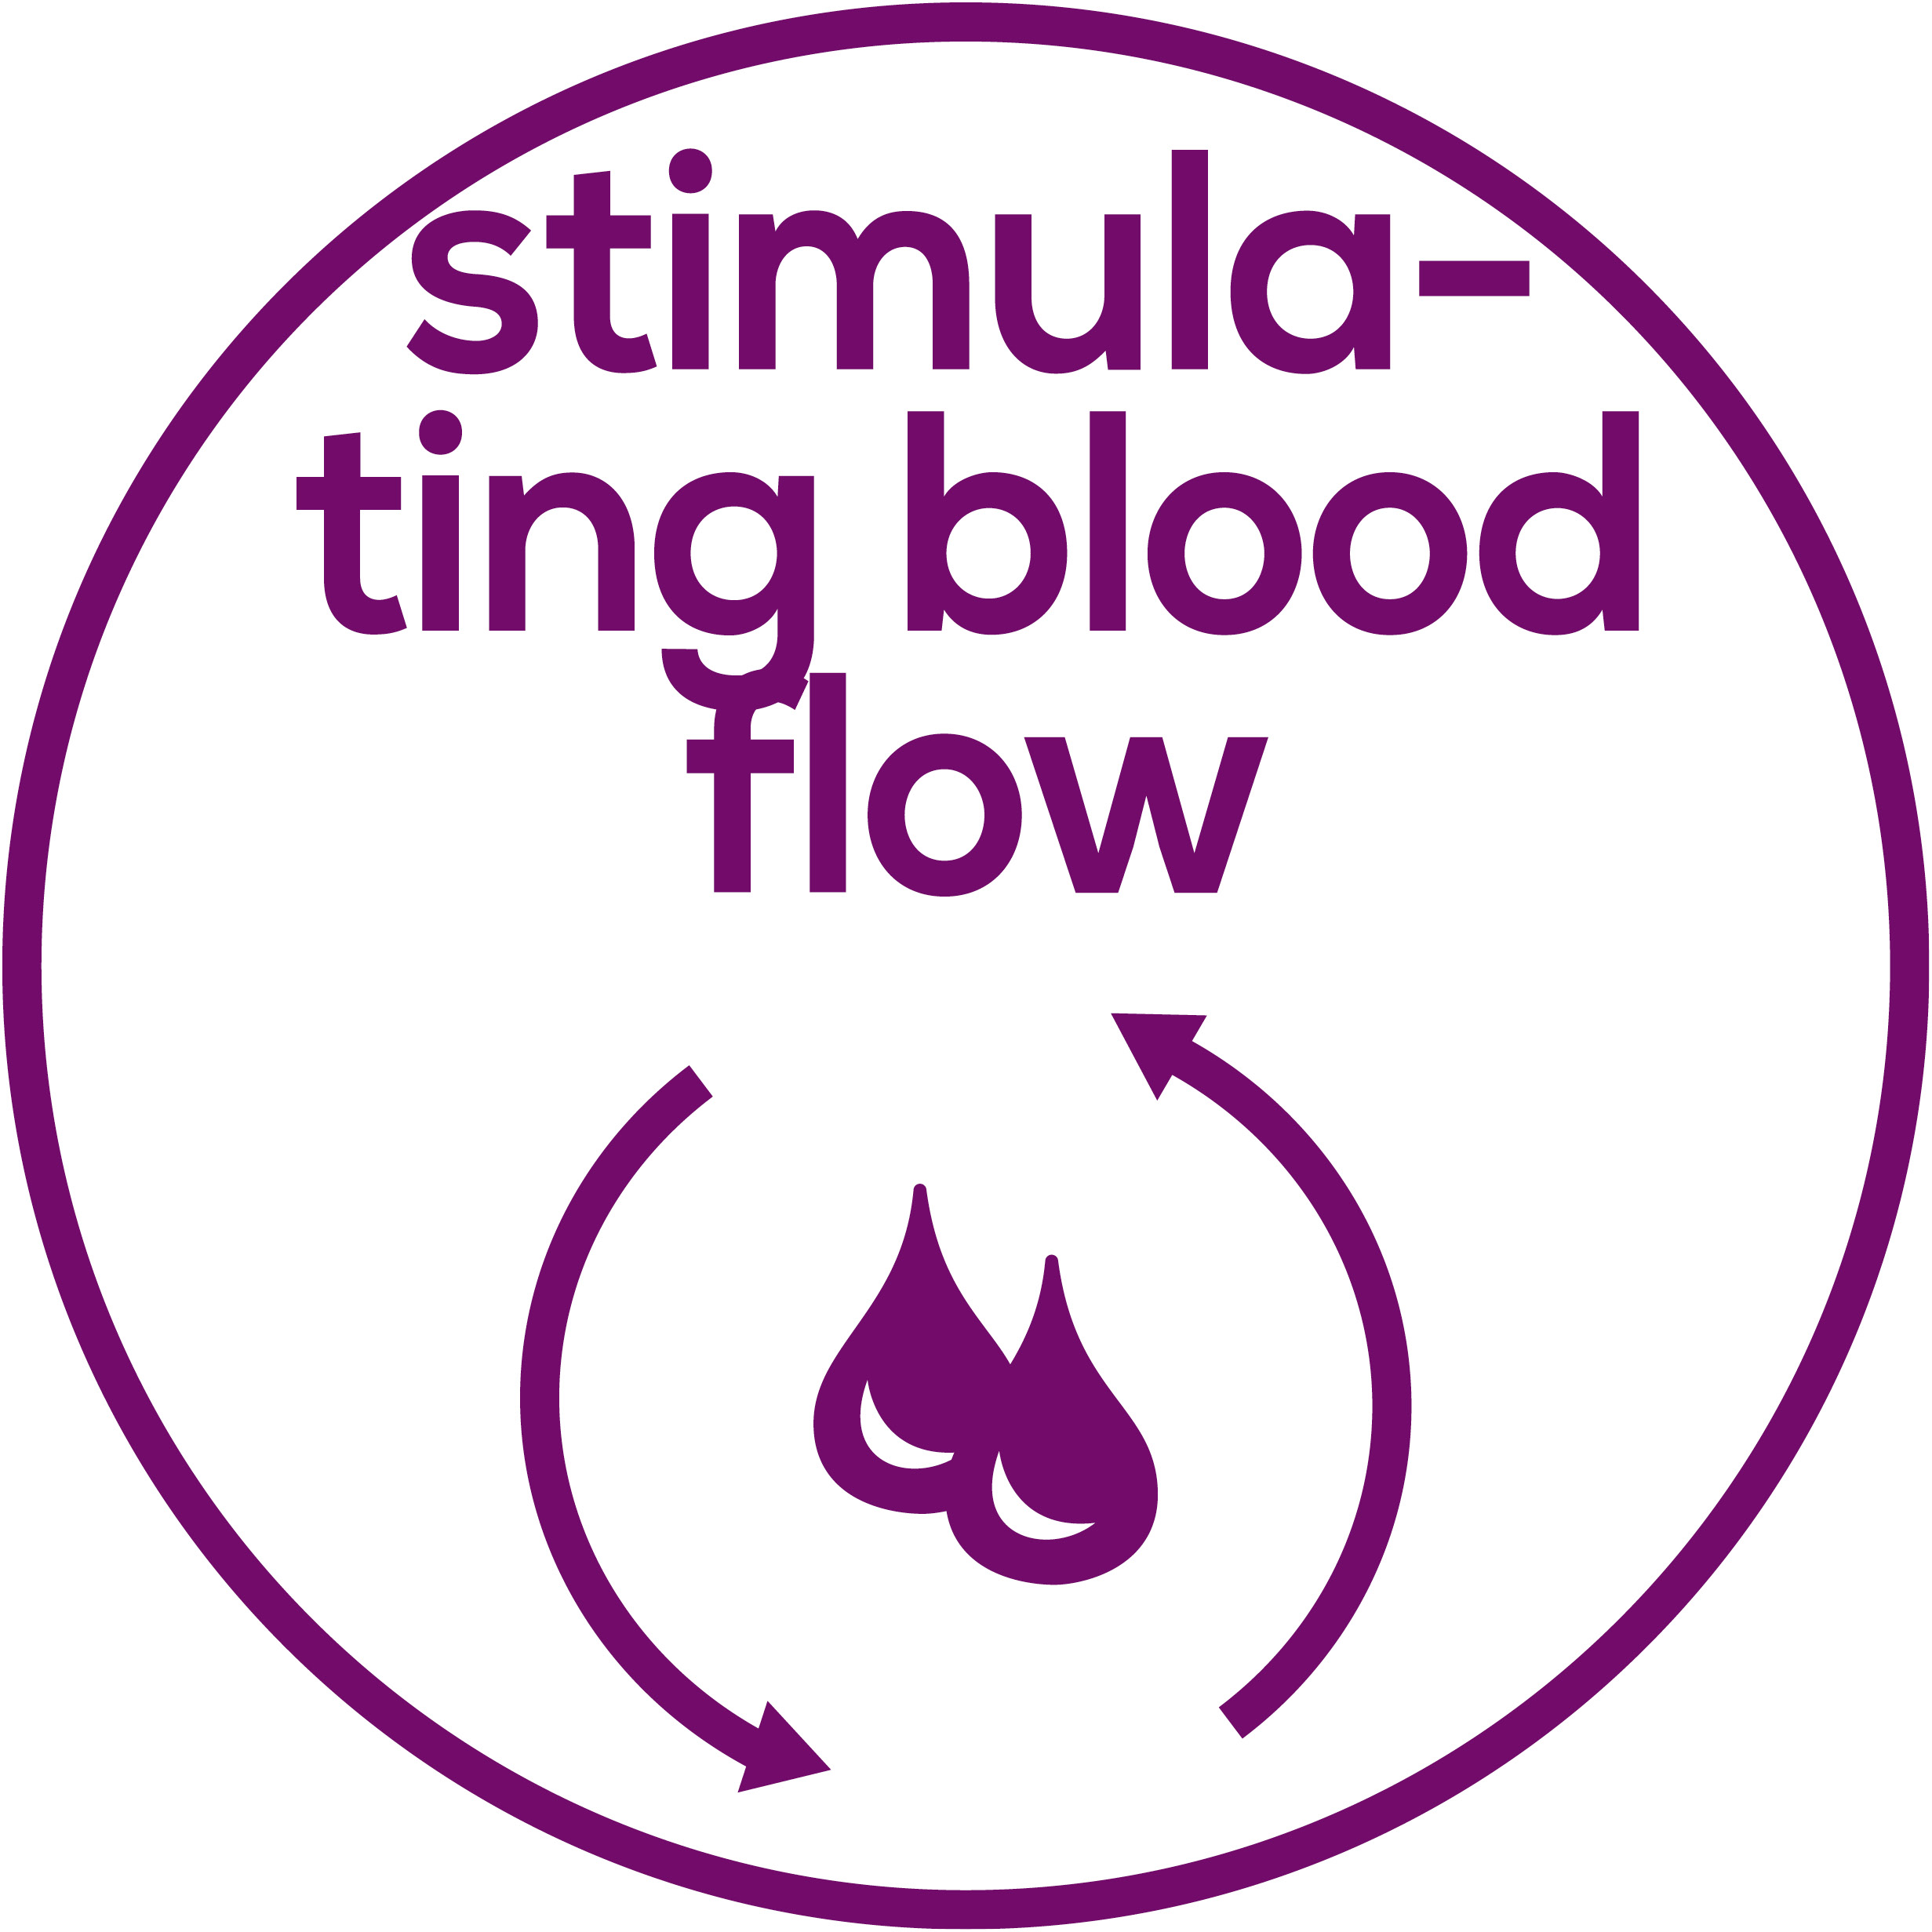 Stimulating bload flow Promotes circulation in the skin layers